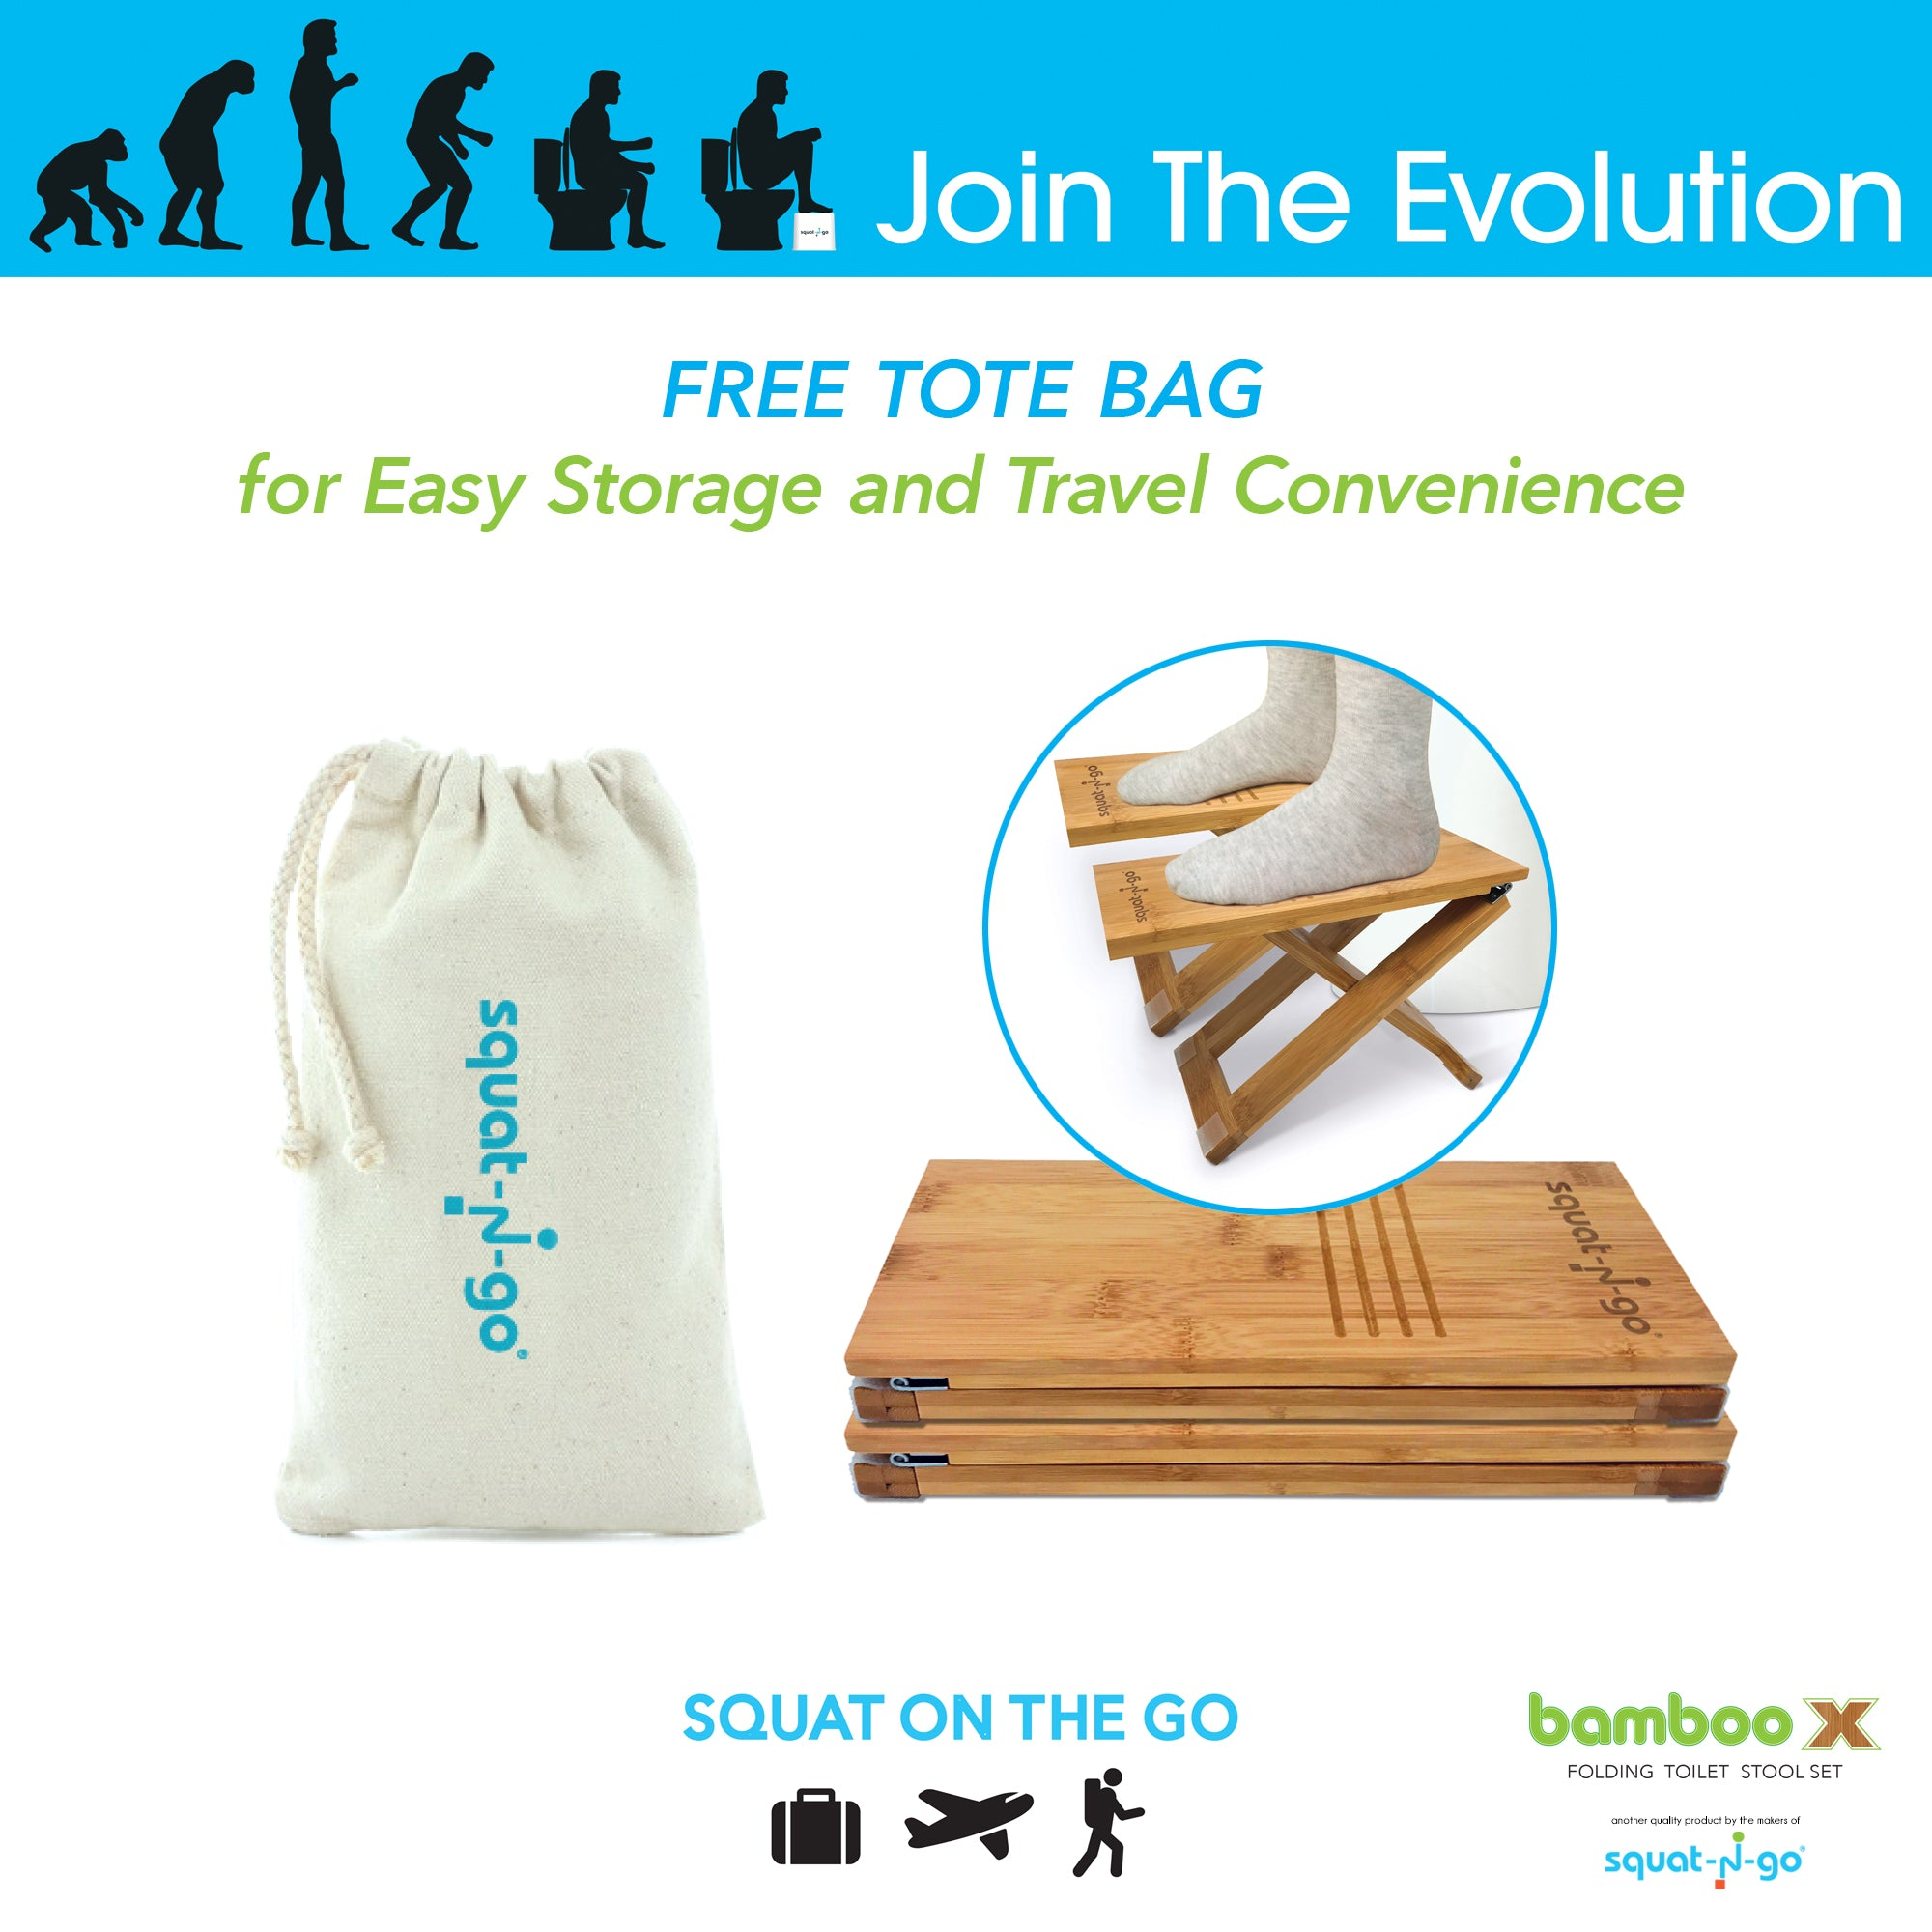 Groovy Bamboo X Toilet Stool Set Comes With Free Travel Bag Cjindustries Chair Design For Home Cjindustriesco